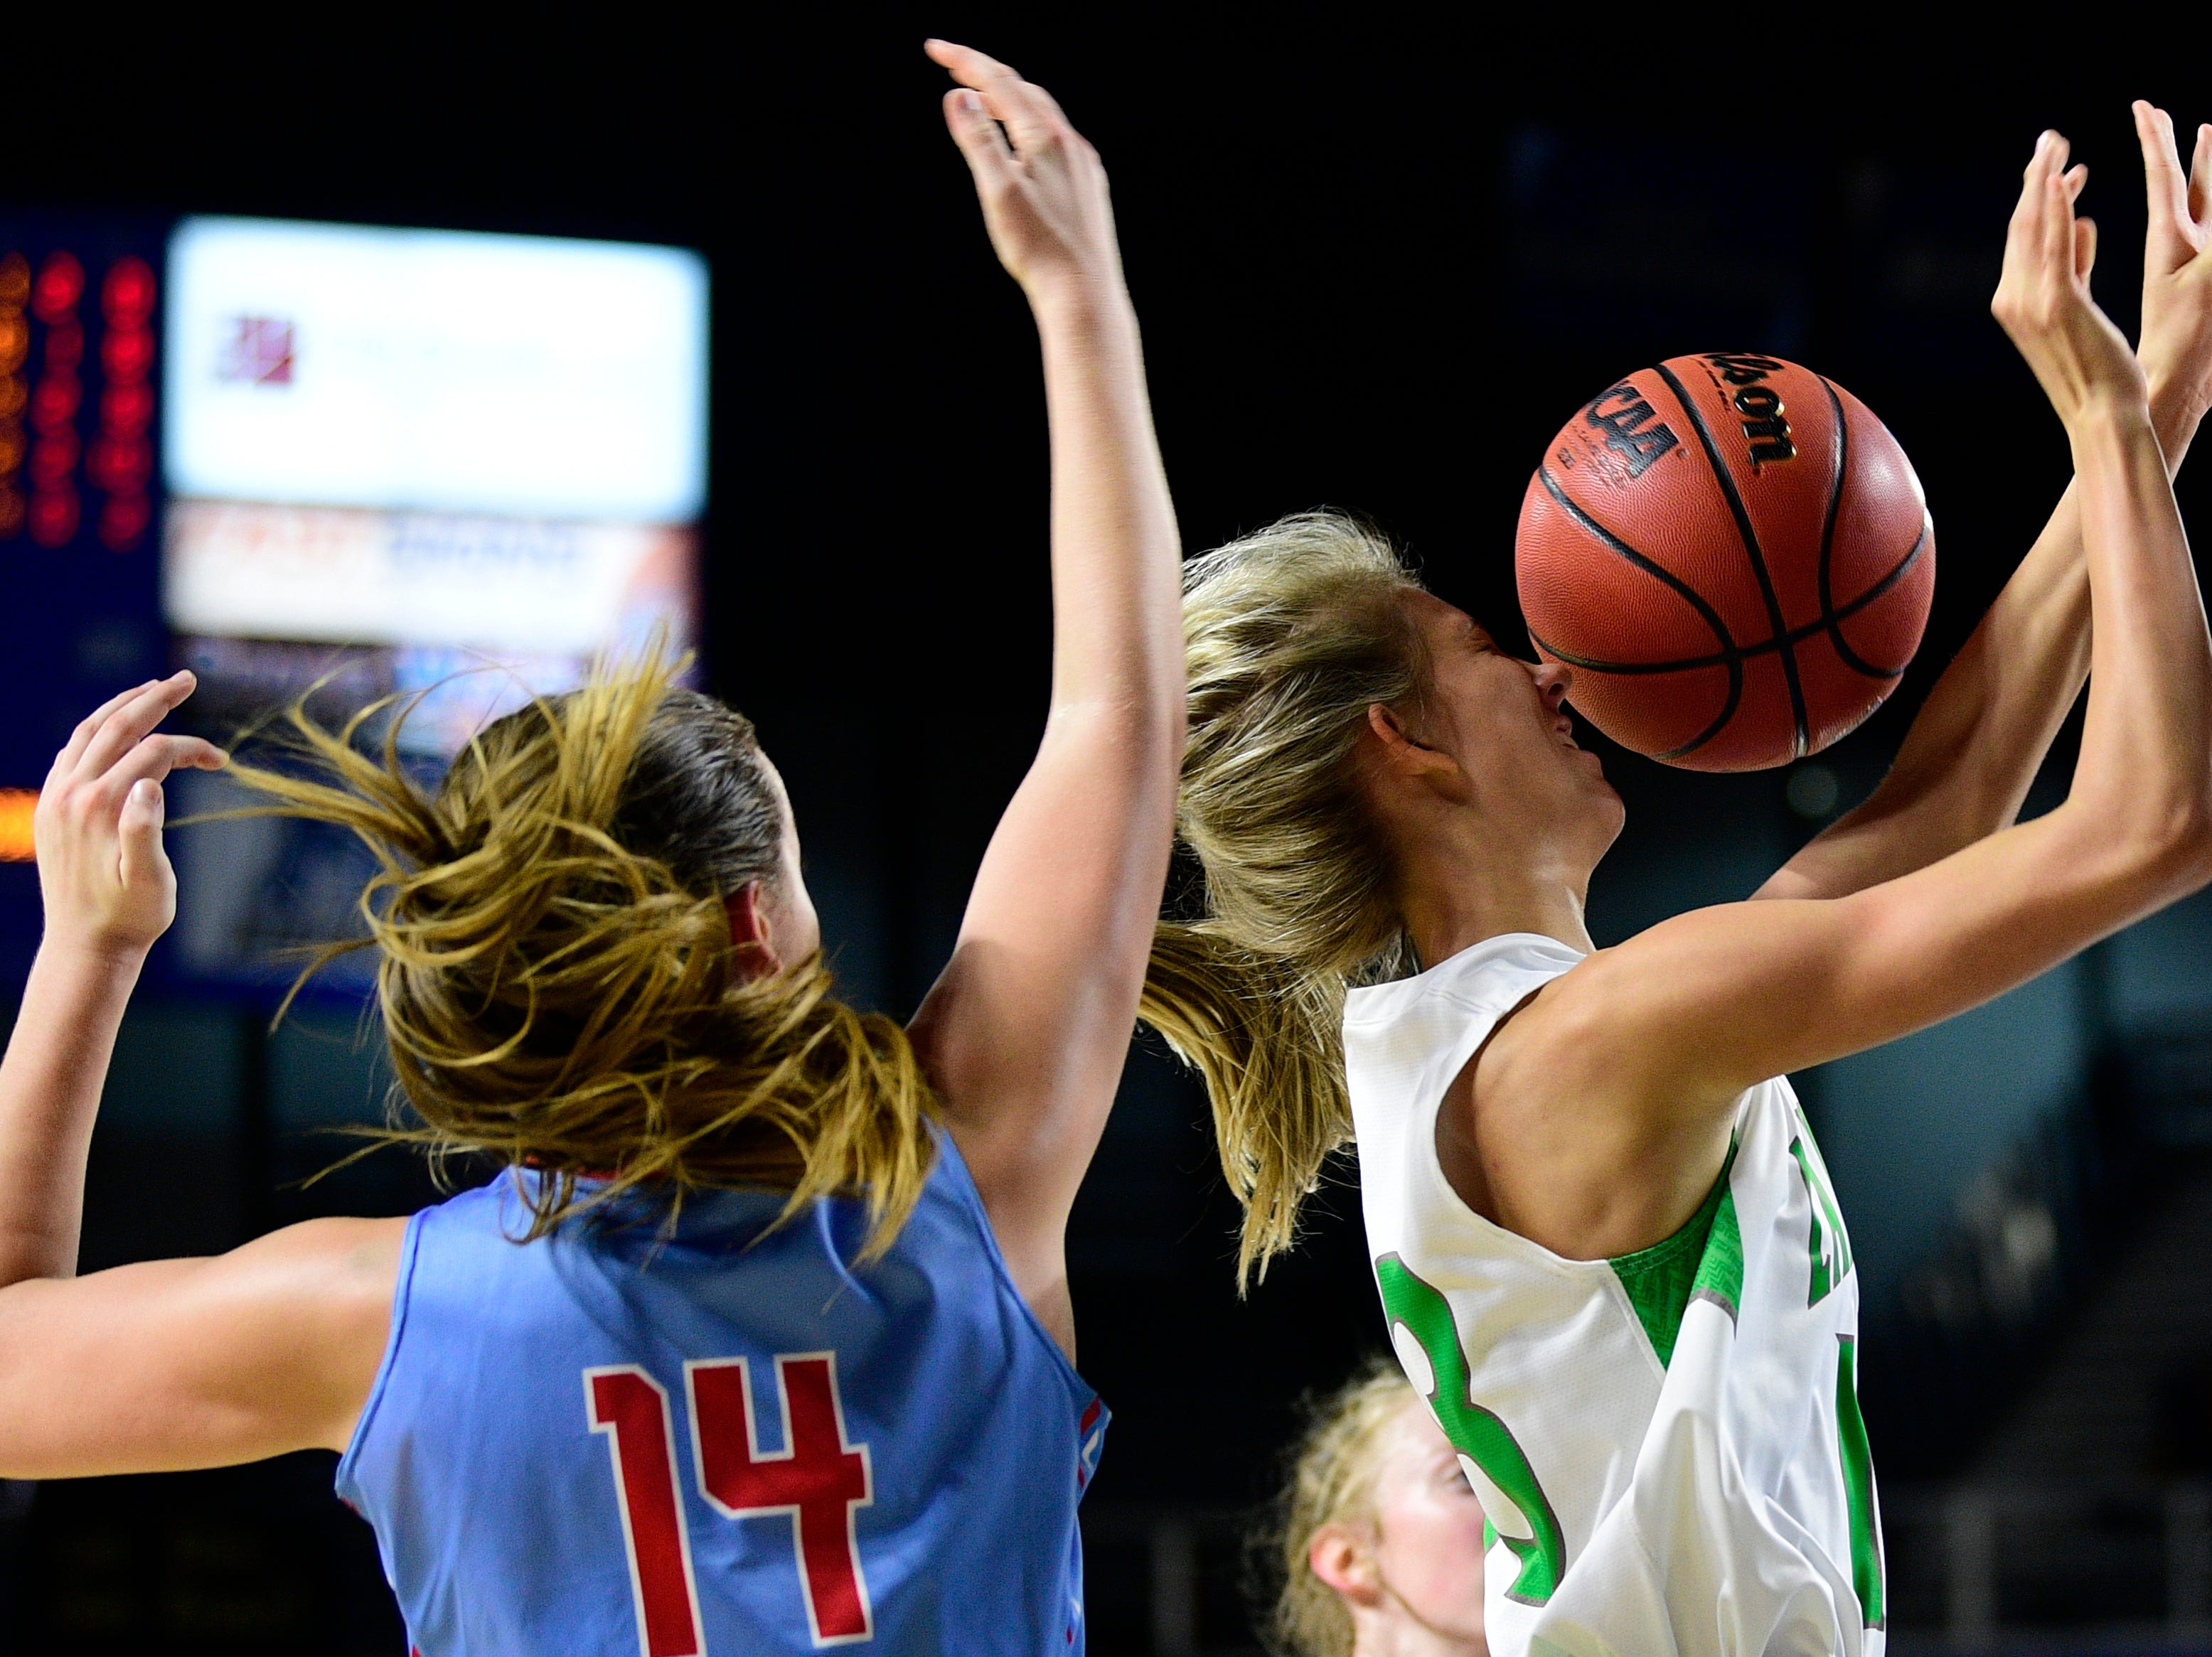 Midway's Sophia Patterson (13) is hit in the face with the ball after her shot is blocked during a game between Midway and Gibson County at the TSSAA girls state tournament at the Murphy Center in Murfreesboro, Tennessee on Friday, March 8, 2019.